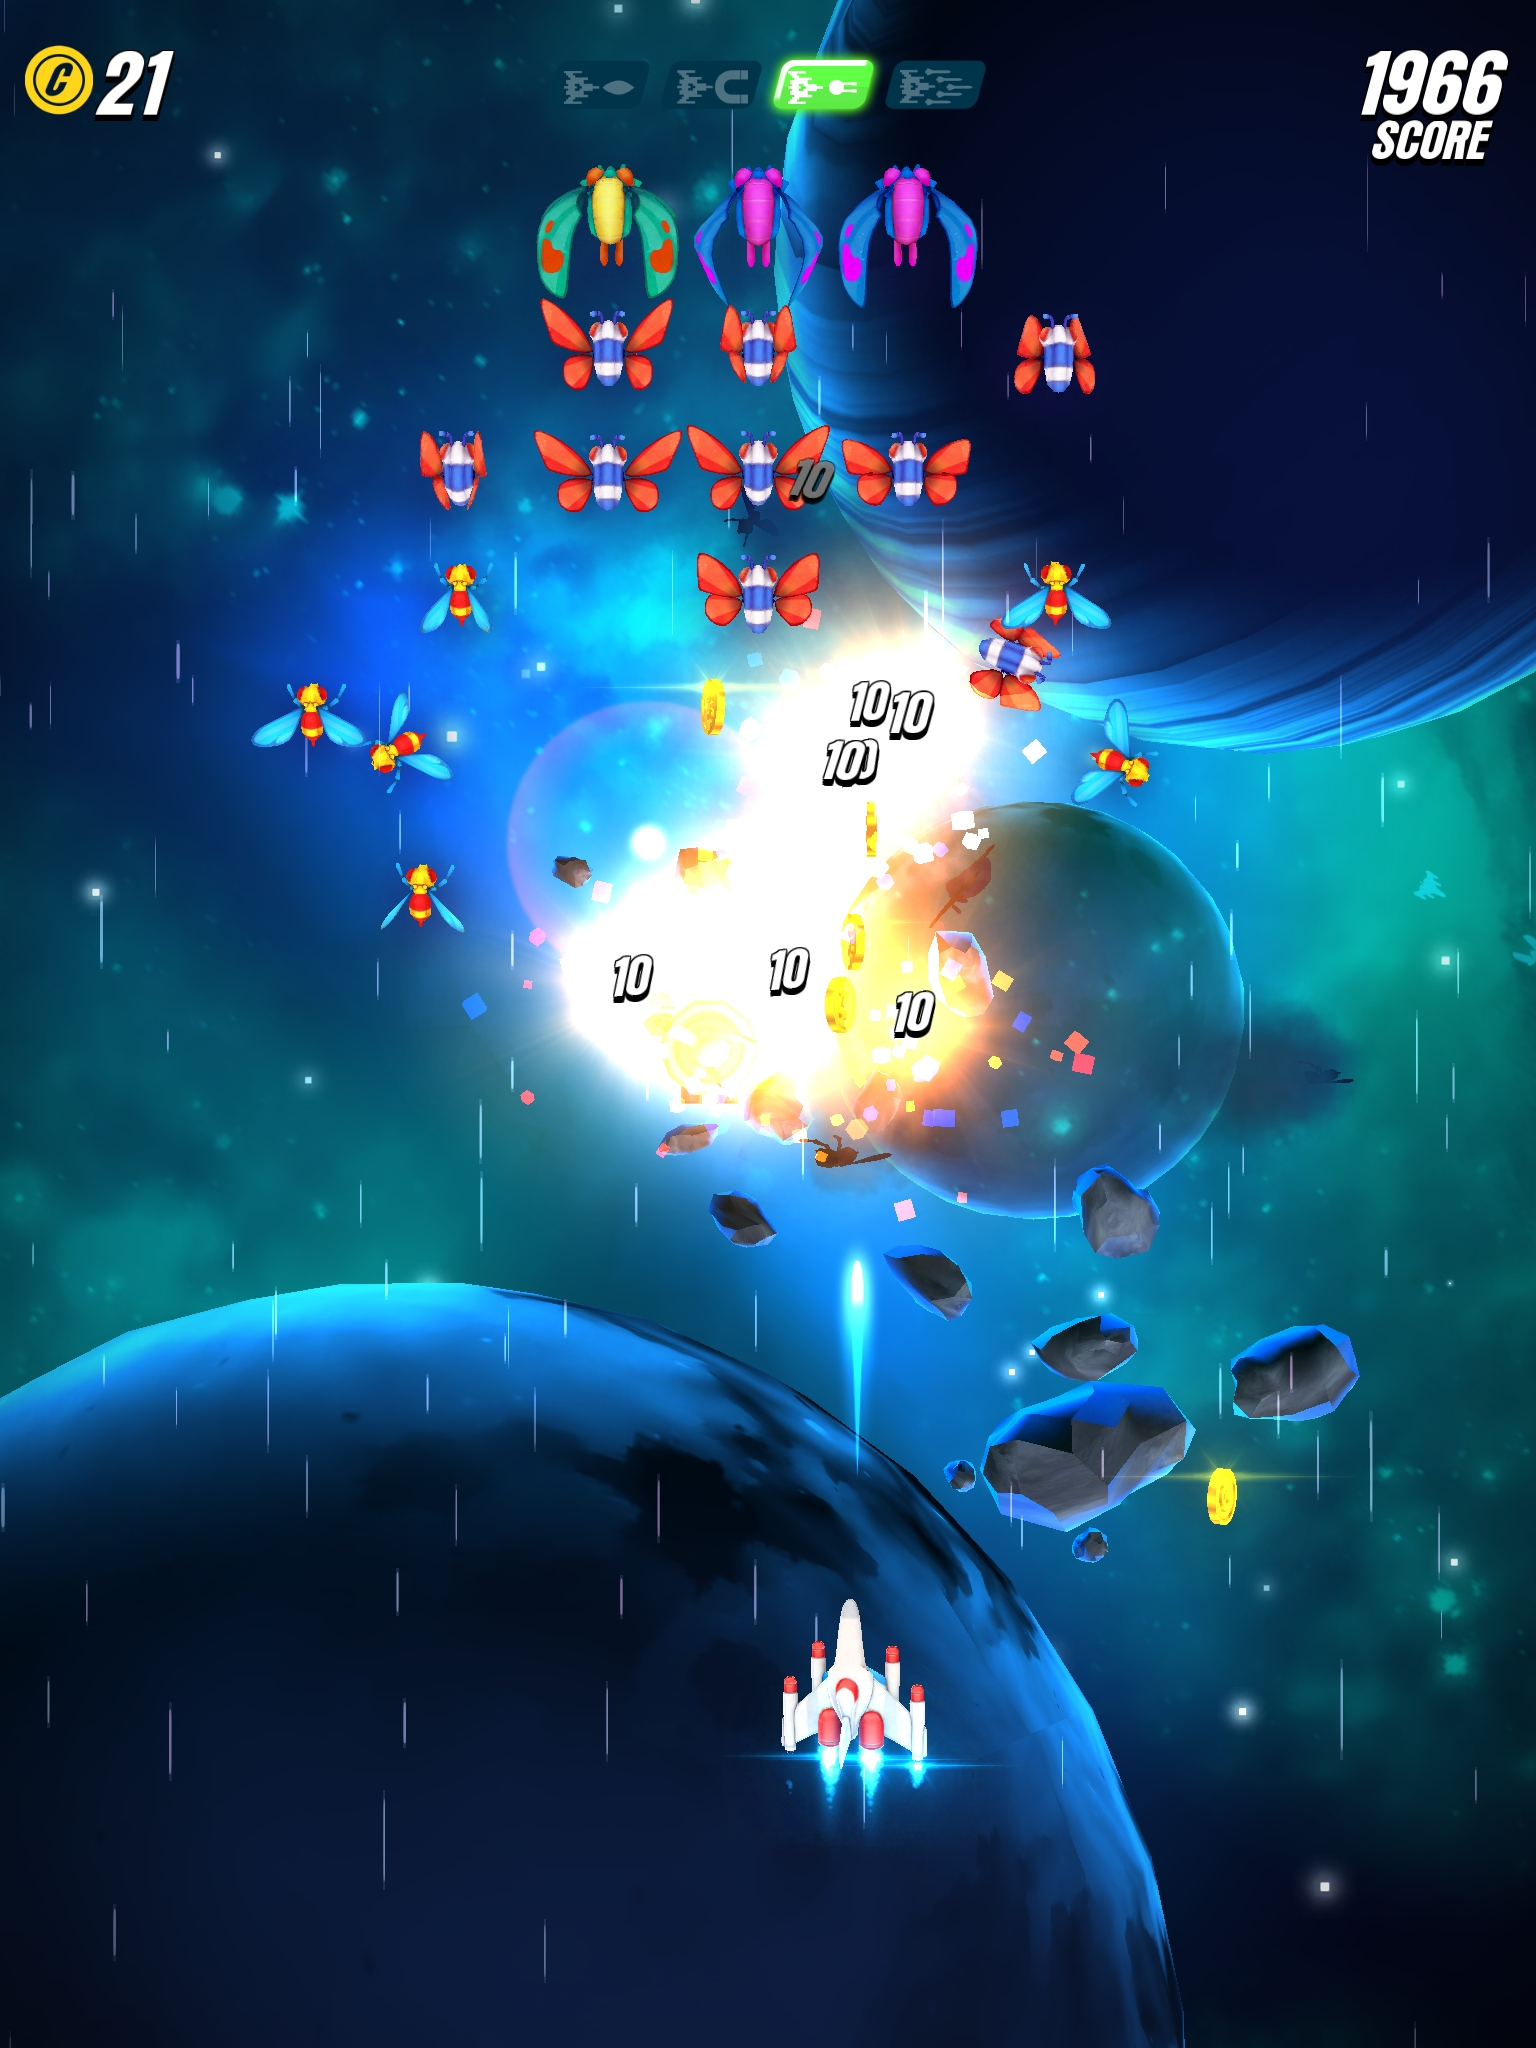 galaga wars soft launches in canada and australia could it be the